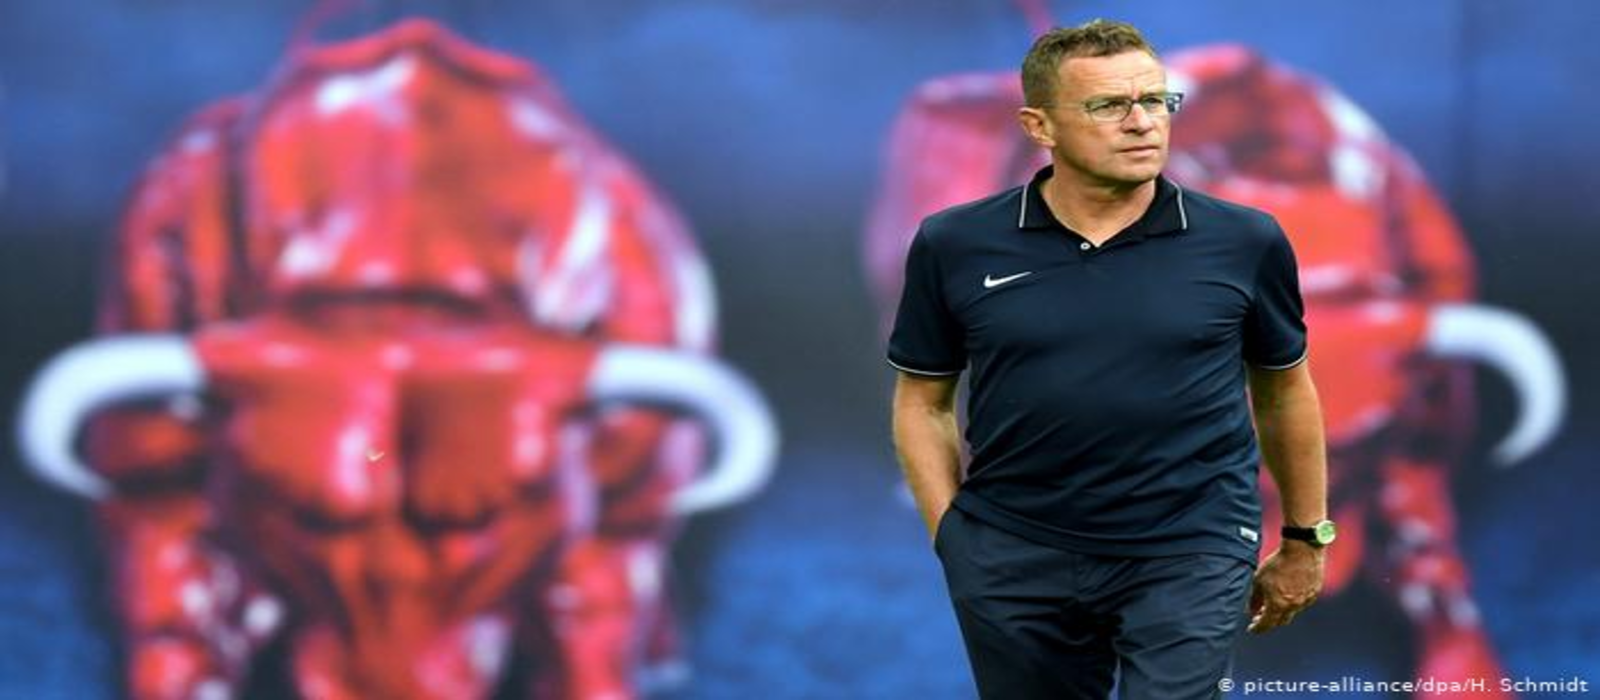 Manchester United monitoring Ralf Rangnick as potential Ole Gunnar Solskjaer replacement – report